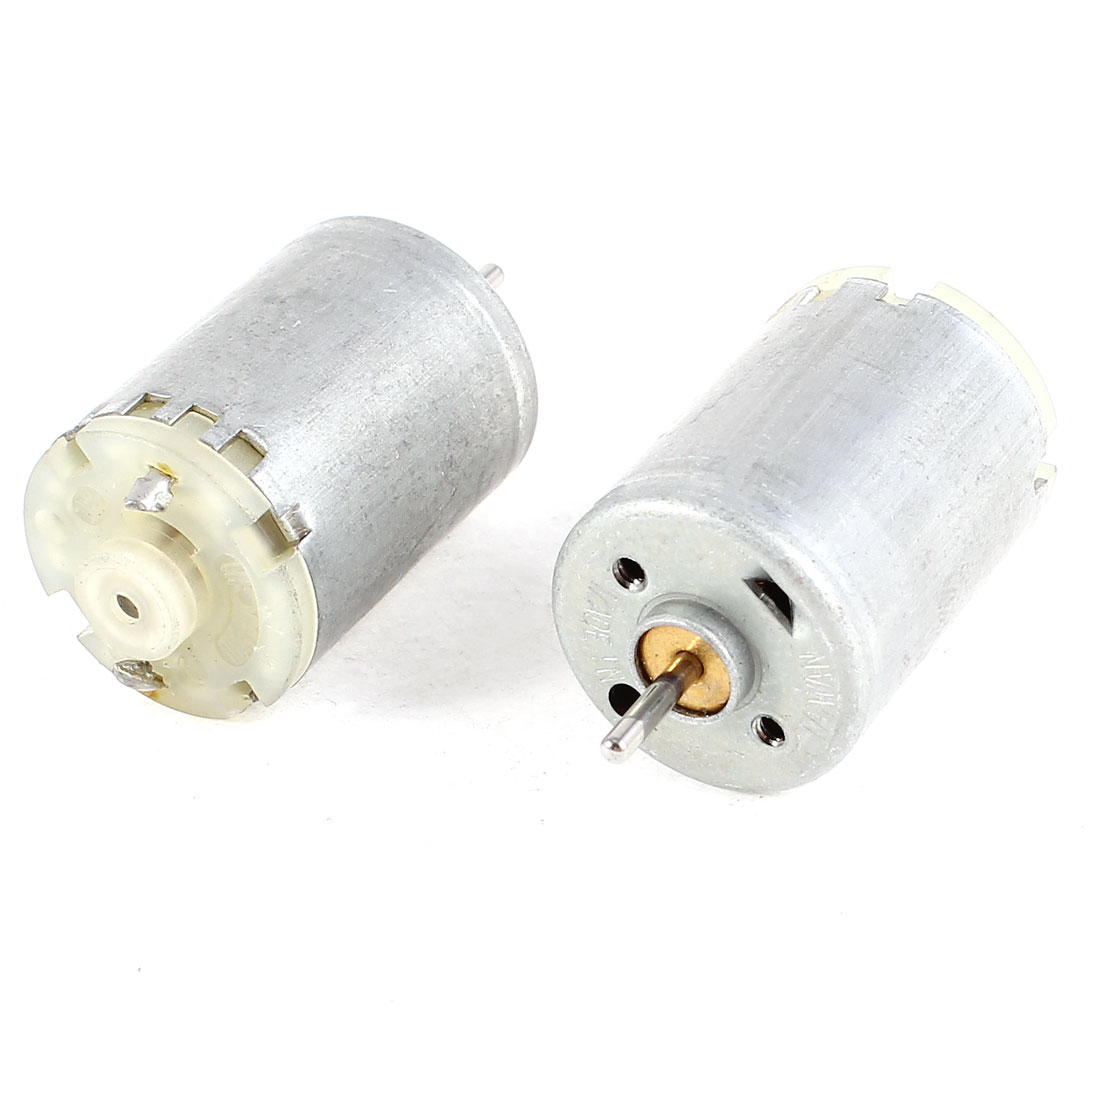 2 Pcs DC 1.5-9V 6000RPM Electric Mini Motor 23x17mm for Toys DIY